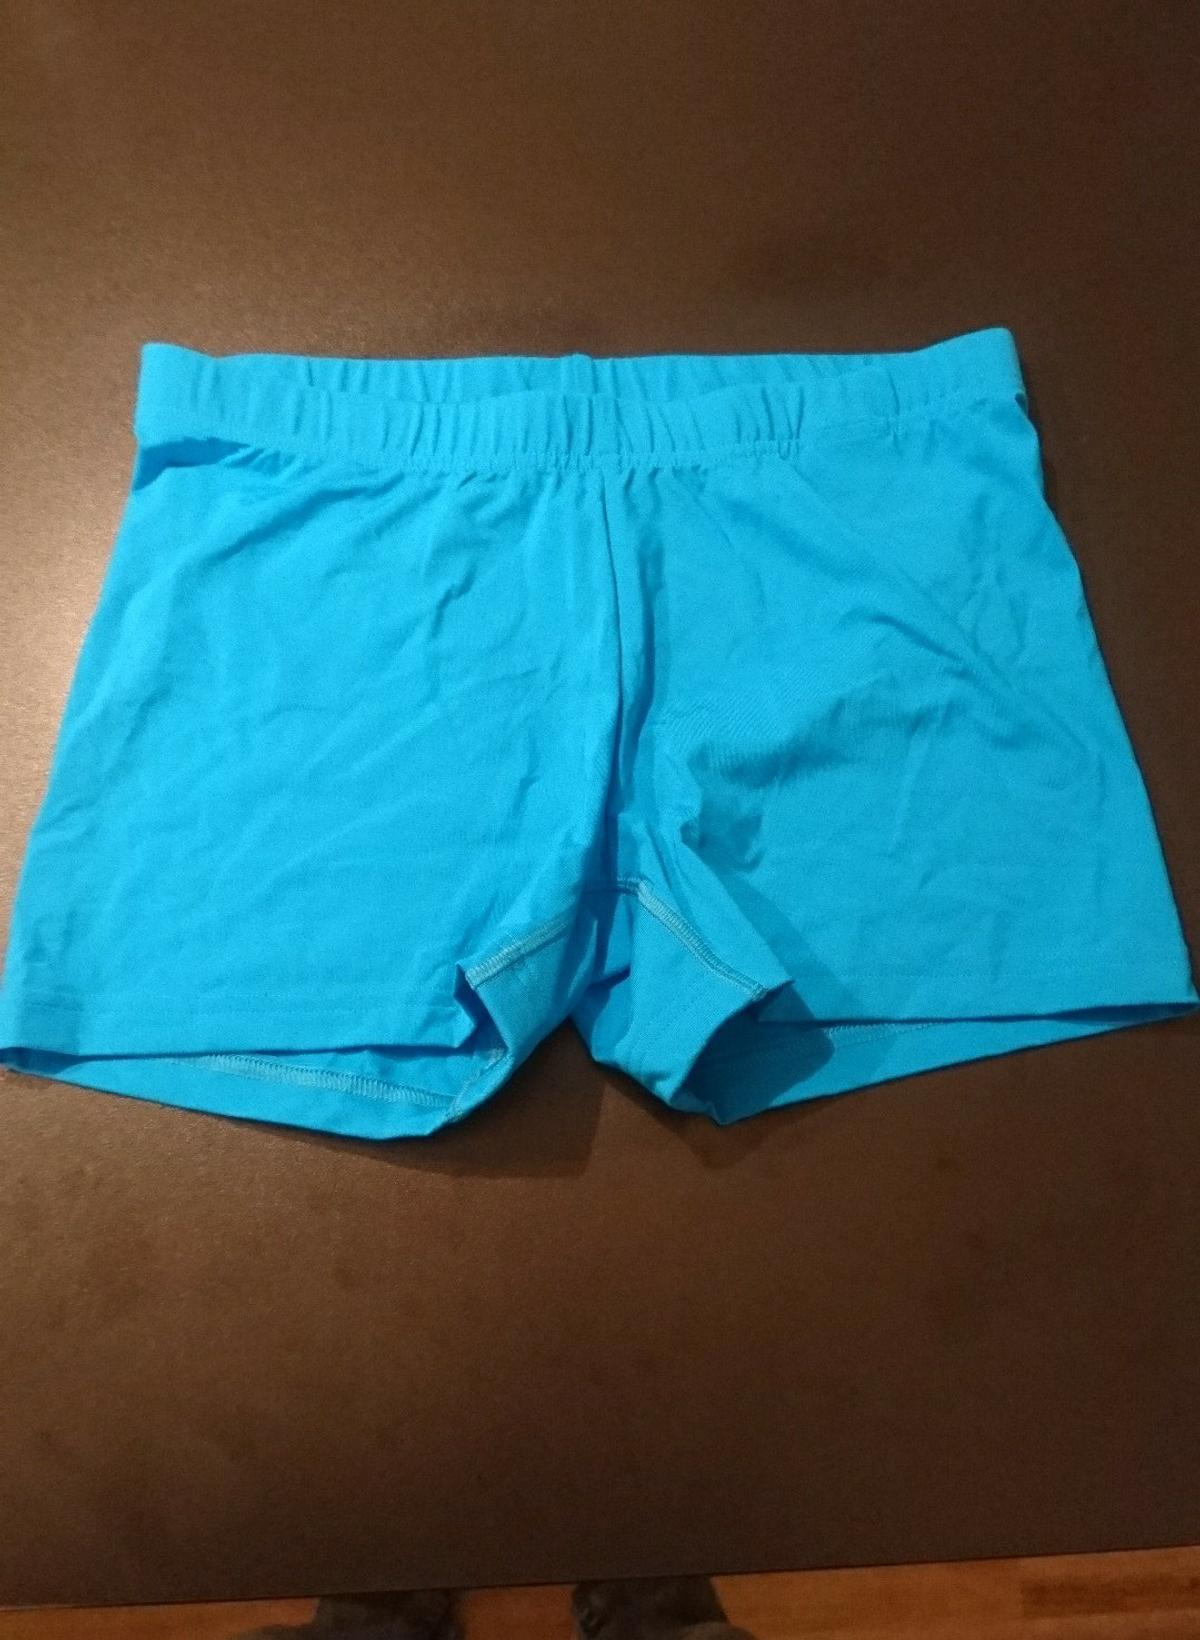 buy online 3f829 1e5a9 Tennisbekleidung Frauen in 6555 See for free for sale - Shpock